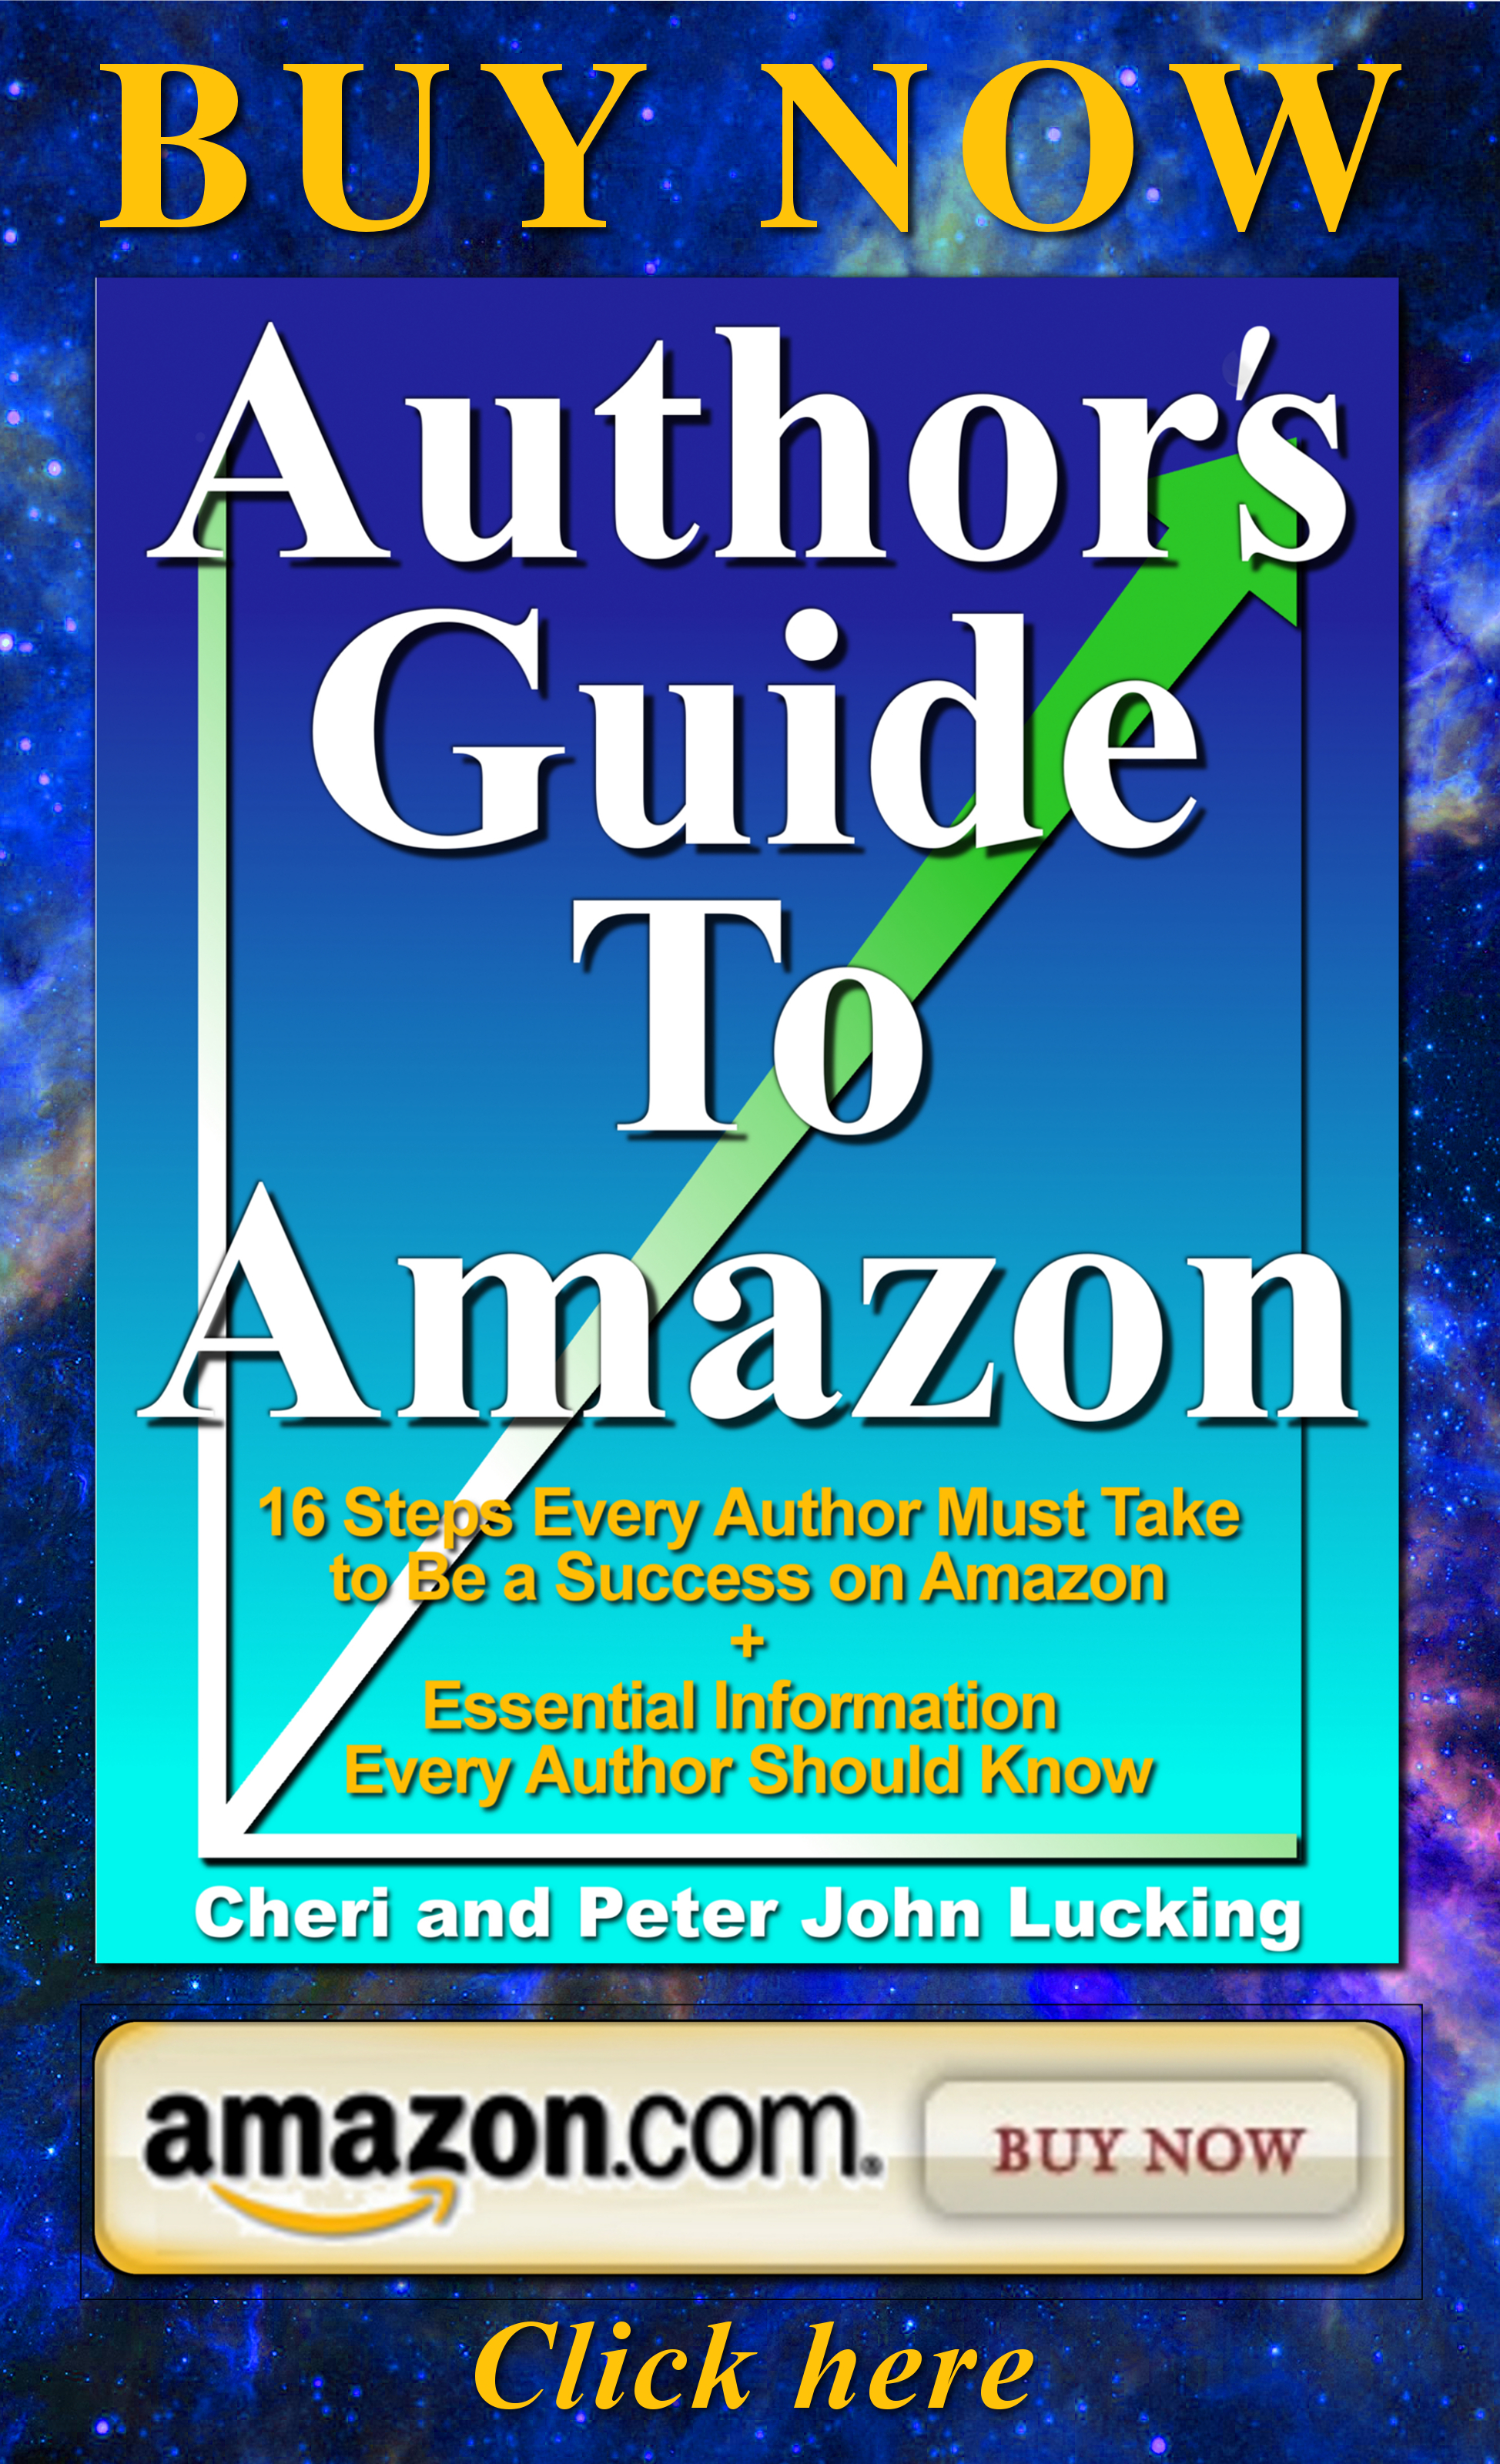 techniques for, publishing books, marketing, sales and selling of books on Amazon by authors